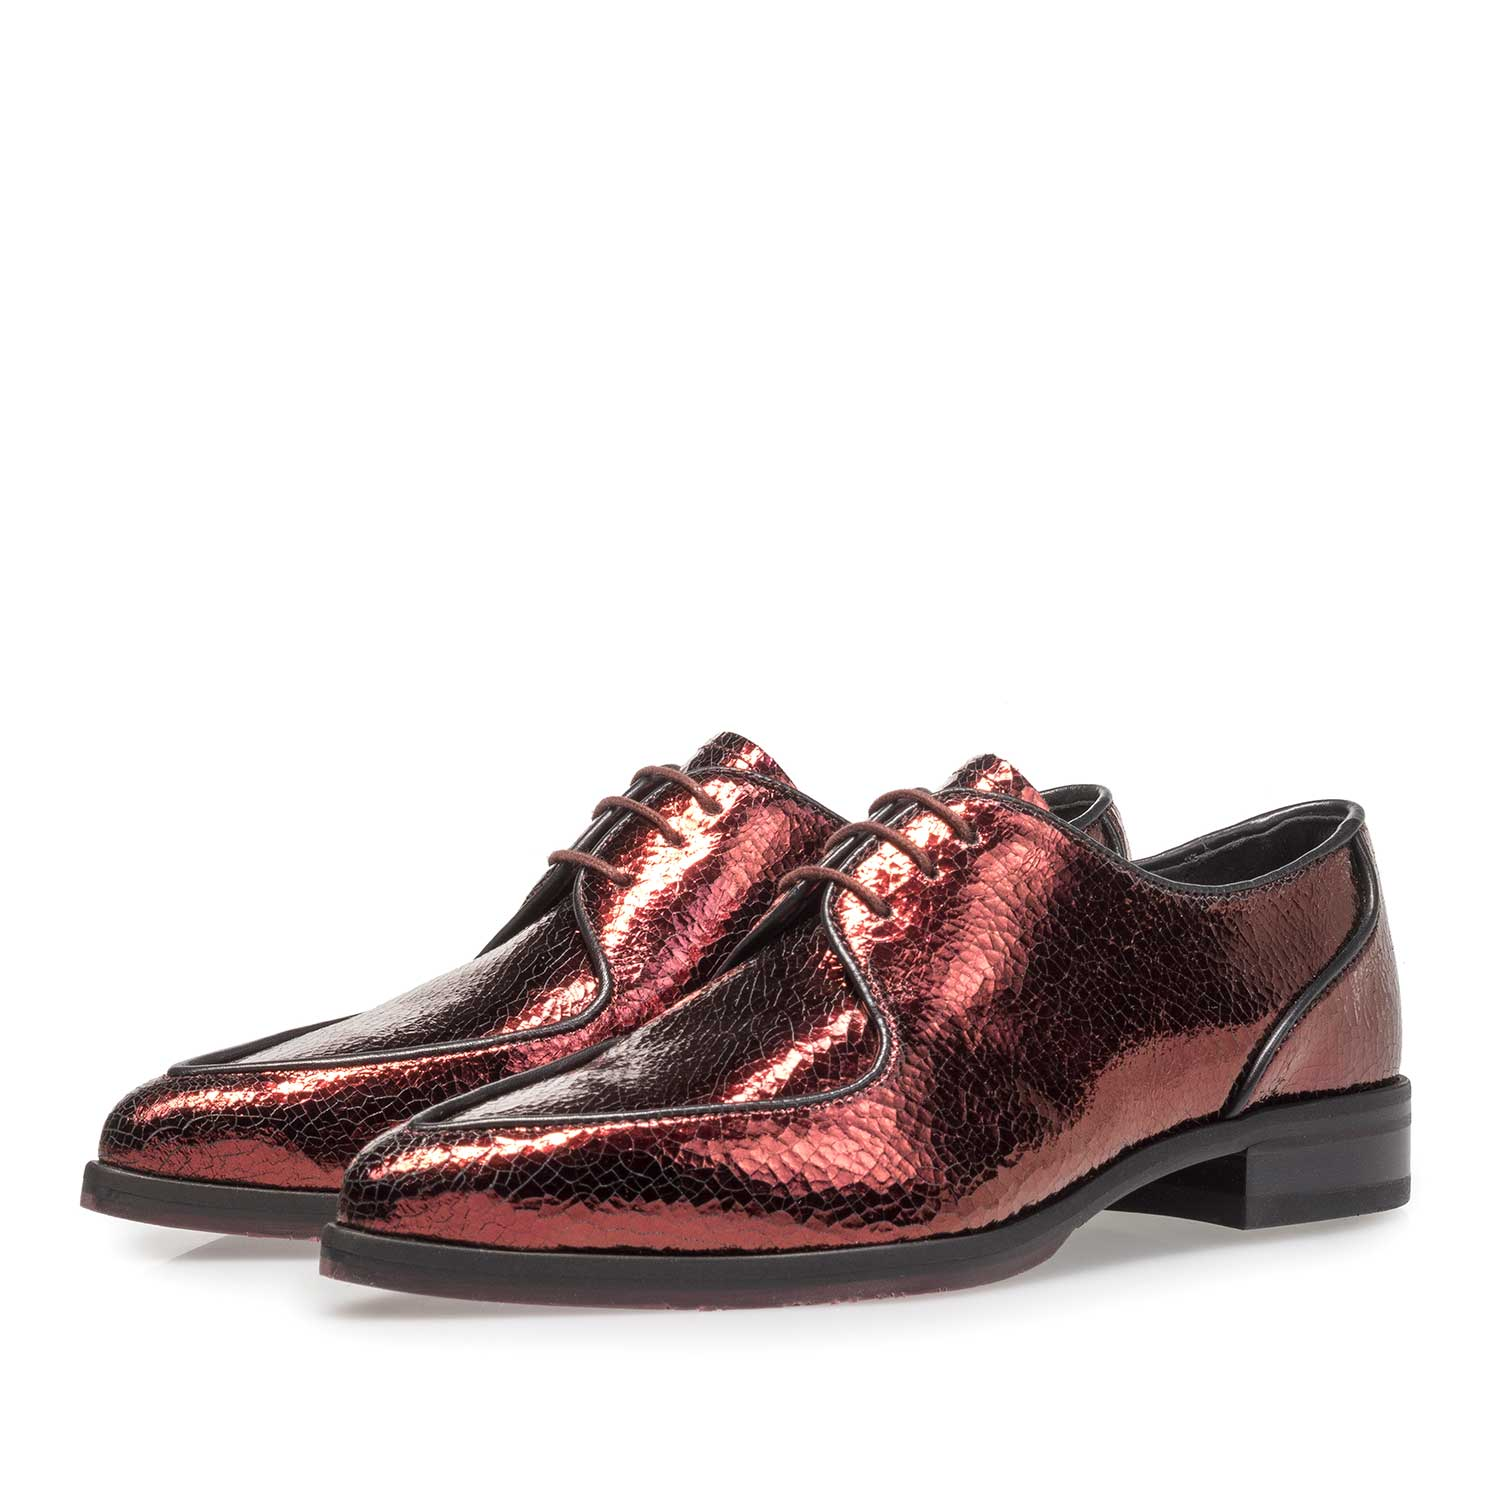 85811/01 - Red leather lace shoe with metallic print